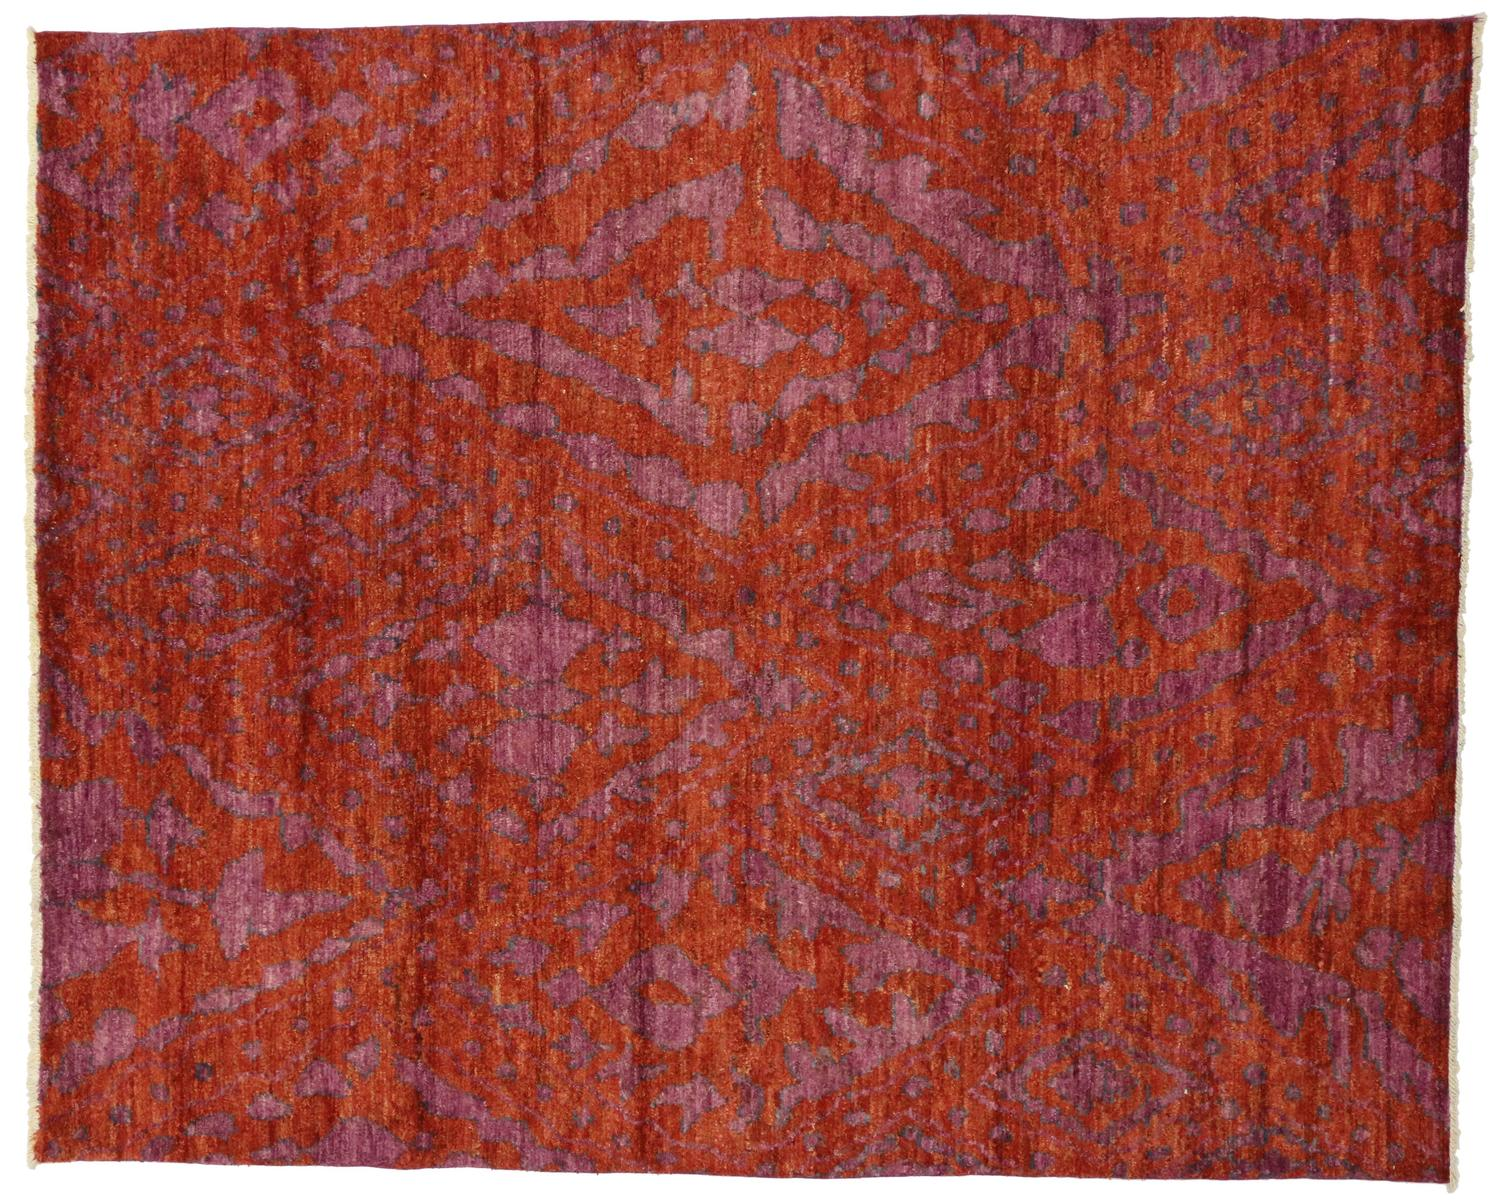 Contemporary Moroccan Style Area Rug with Abstract Design For Sale at ...